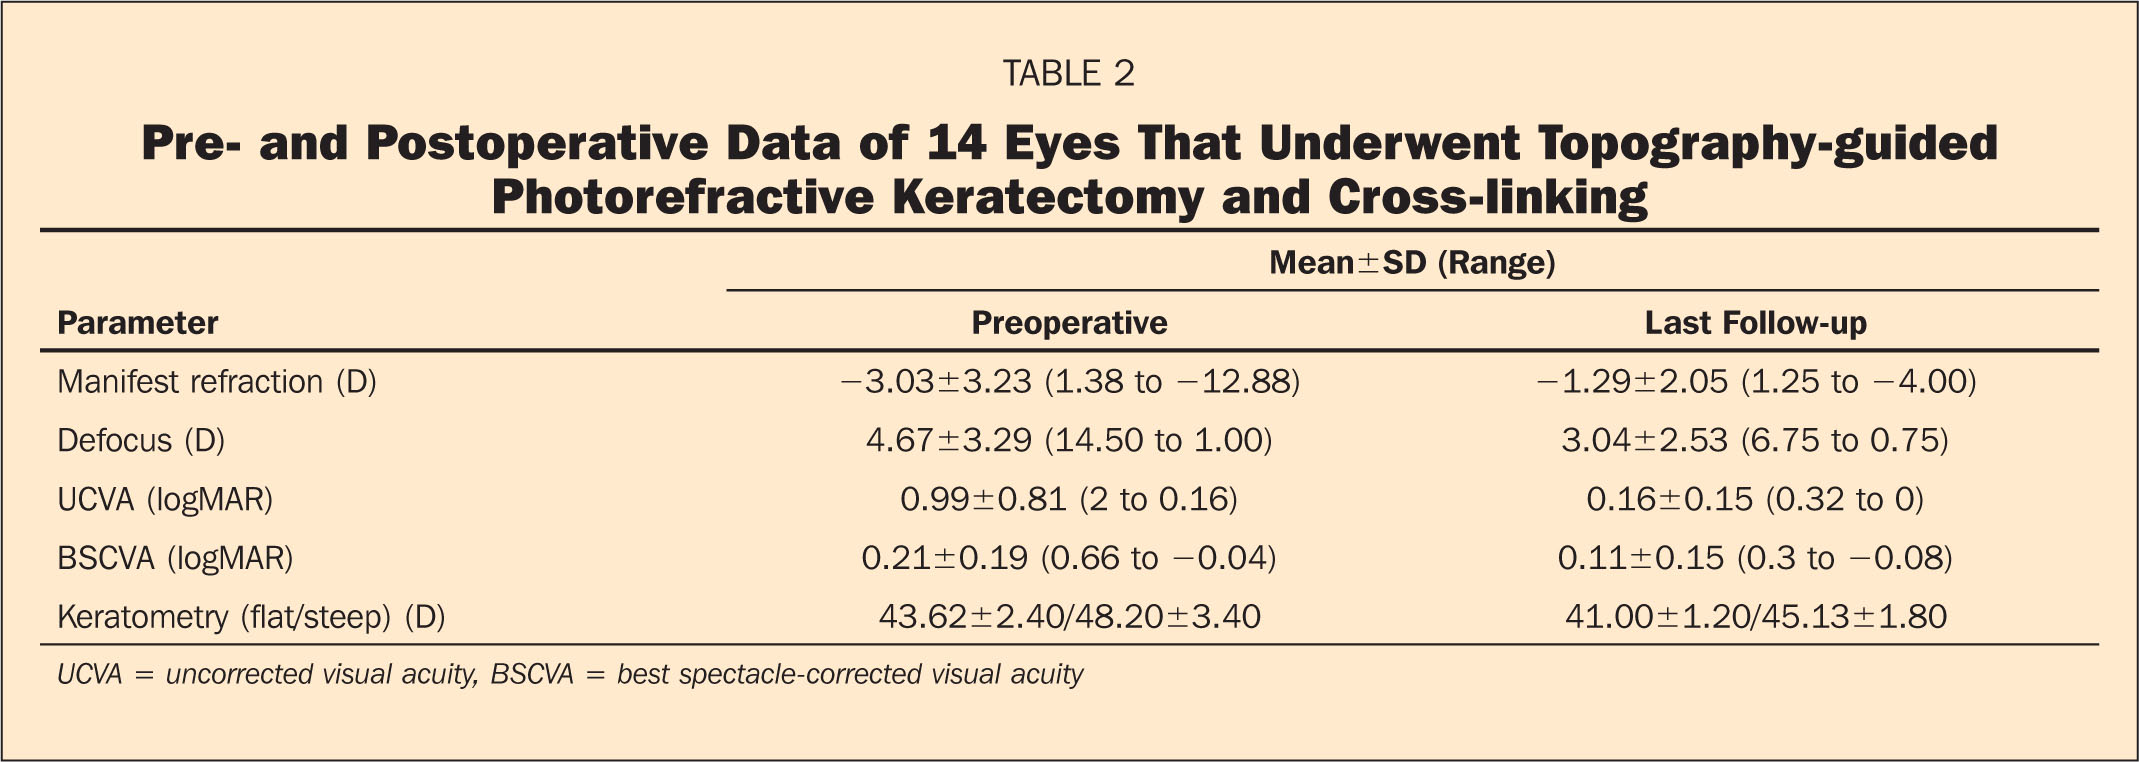 Pre- and Postoperative Data of 14 Eyes that Underwent Topography-Guided Photorefractive Keratectomy and Cross-Linking